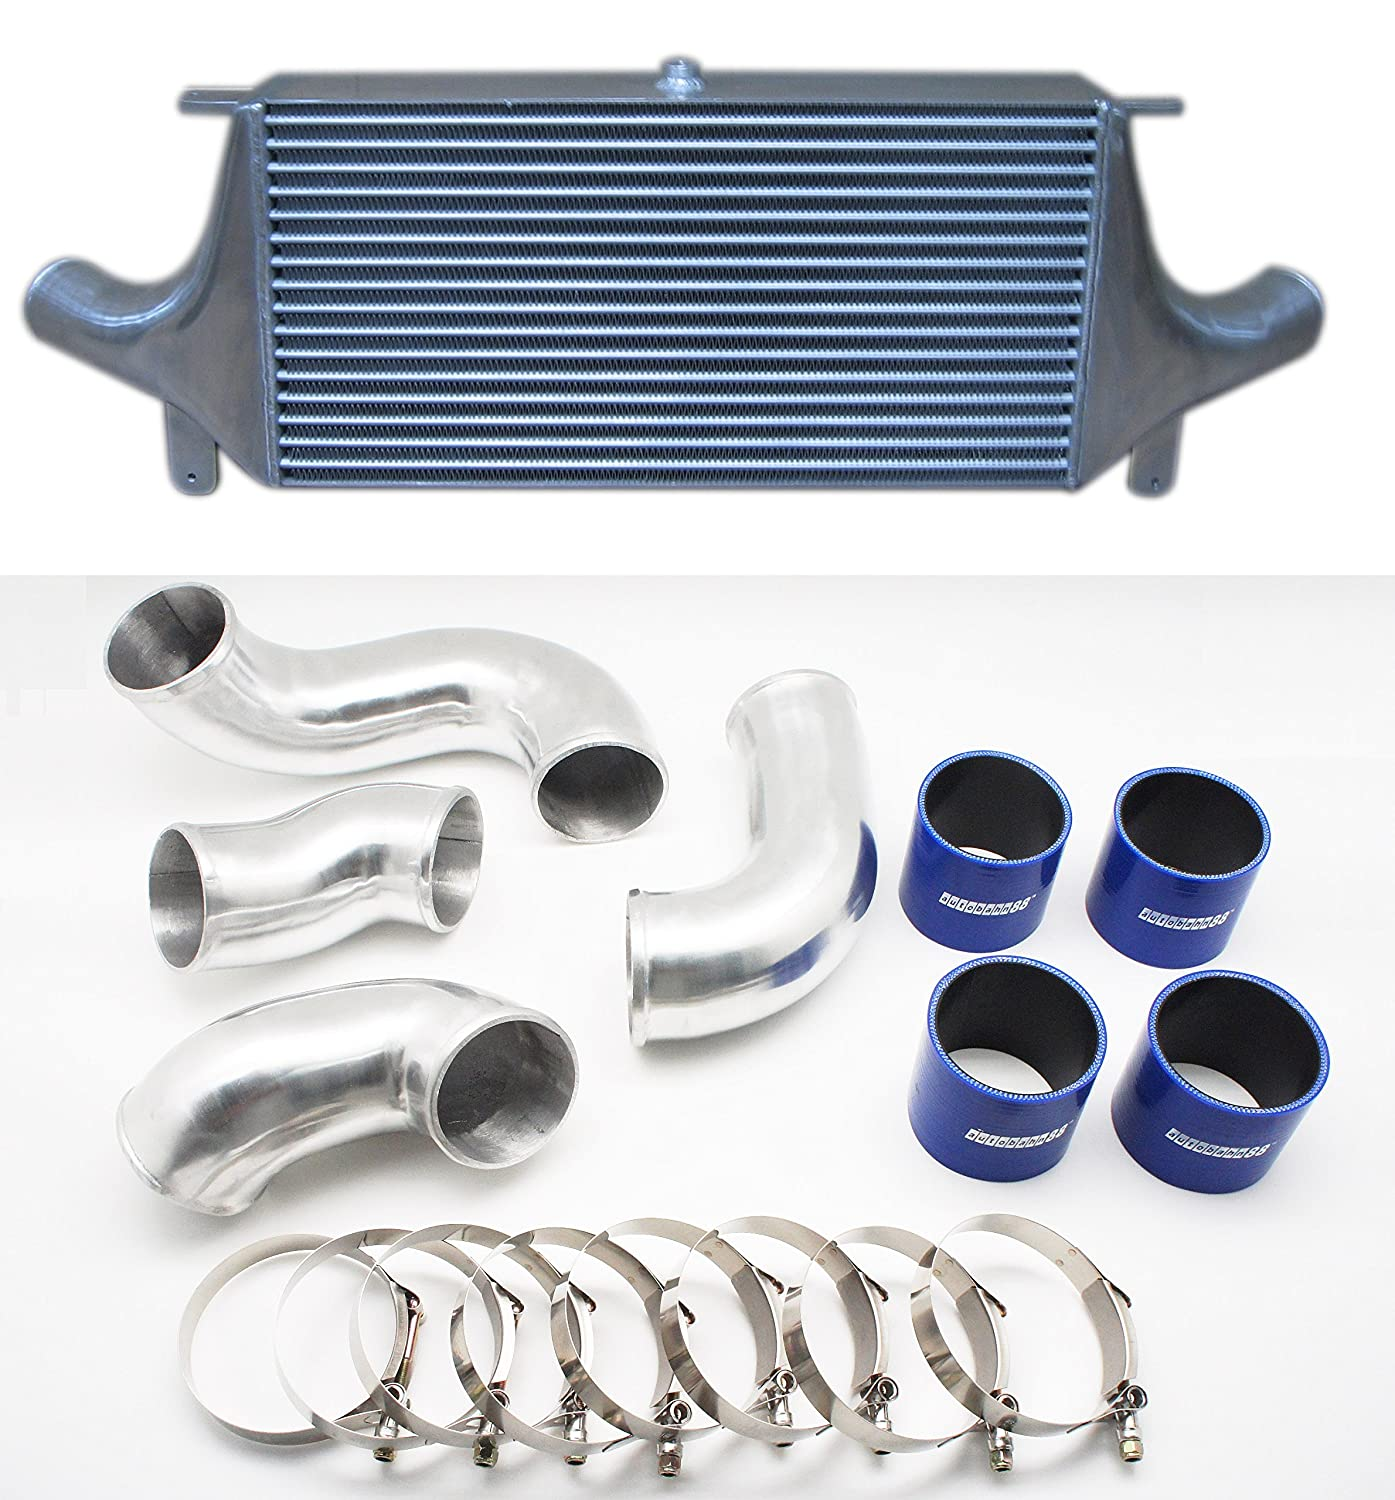 Autobahn88 Universal Front-Mount Intercooler FMIC, GT-Type, Core Size 600x300x100mm (24x12x4'), Inlet Outlet 76mm (3') Core Size 600x300x100mm (24x12x4) Inlet Outlet 76mm (3)